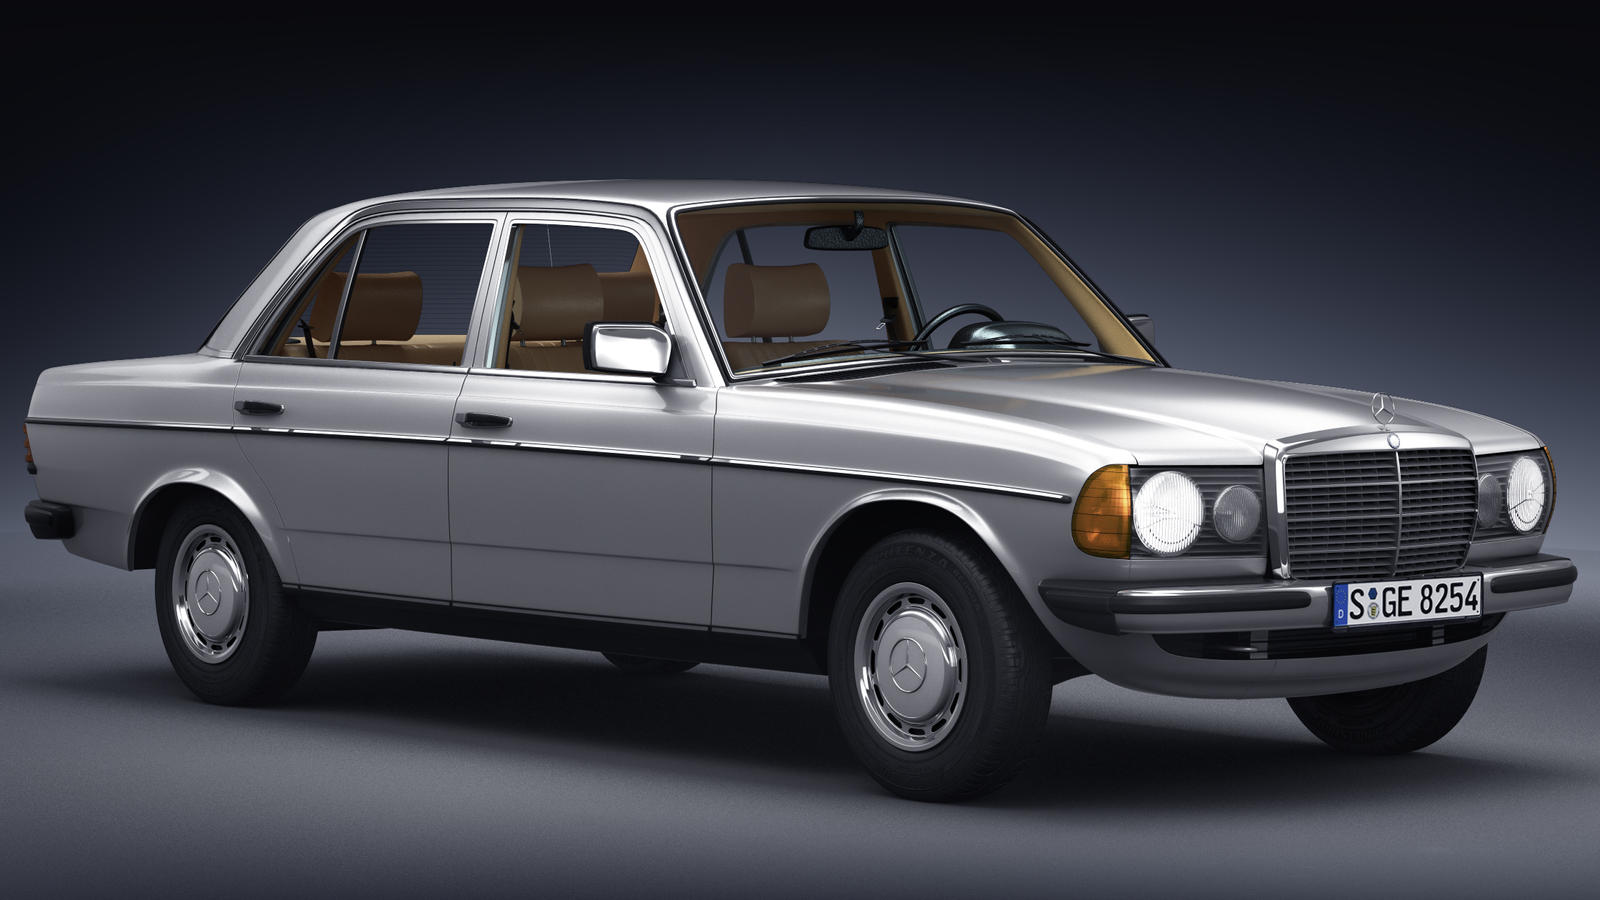 mercedes benz 230e w123 youngtimer by splicer436 on deviantart. Black Bedroom Furniture Sets. Home Design Ideas